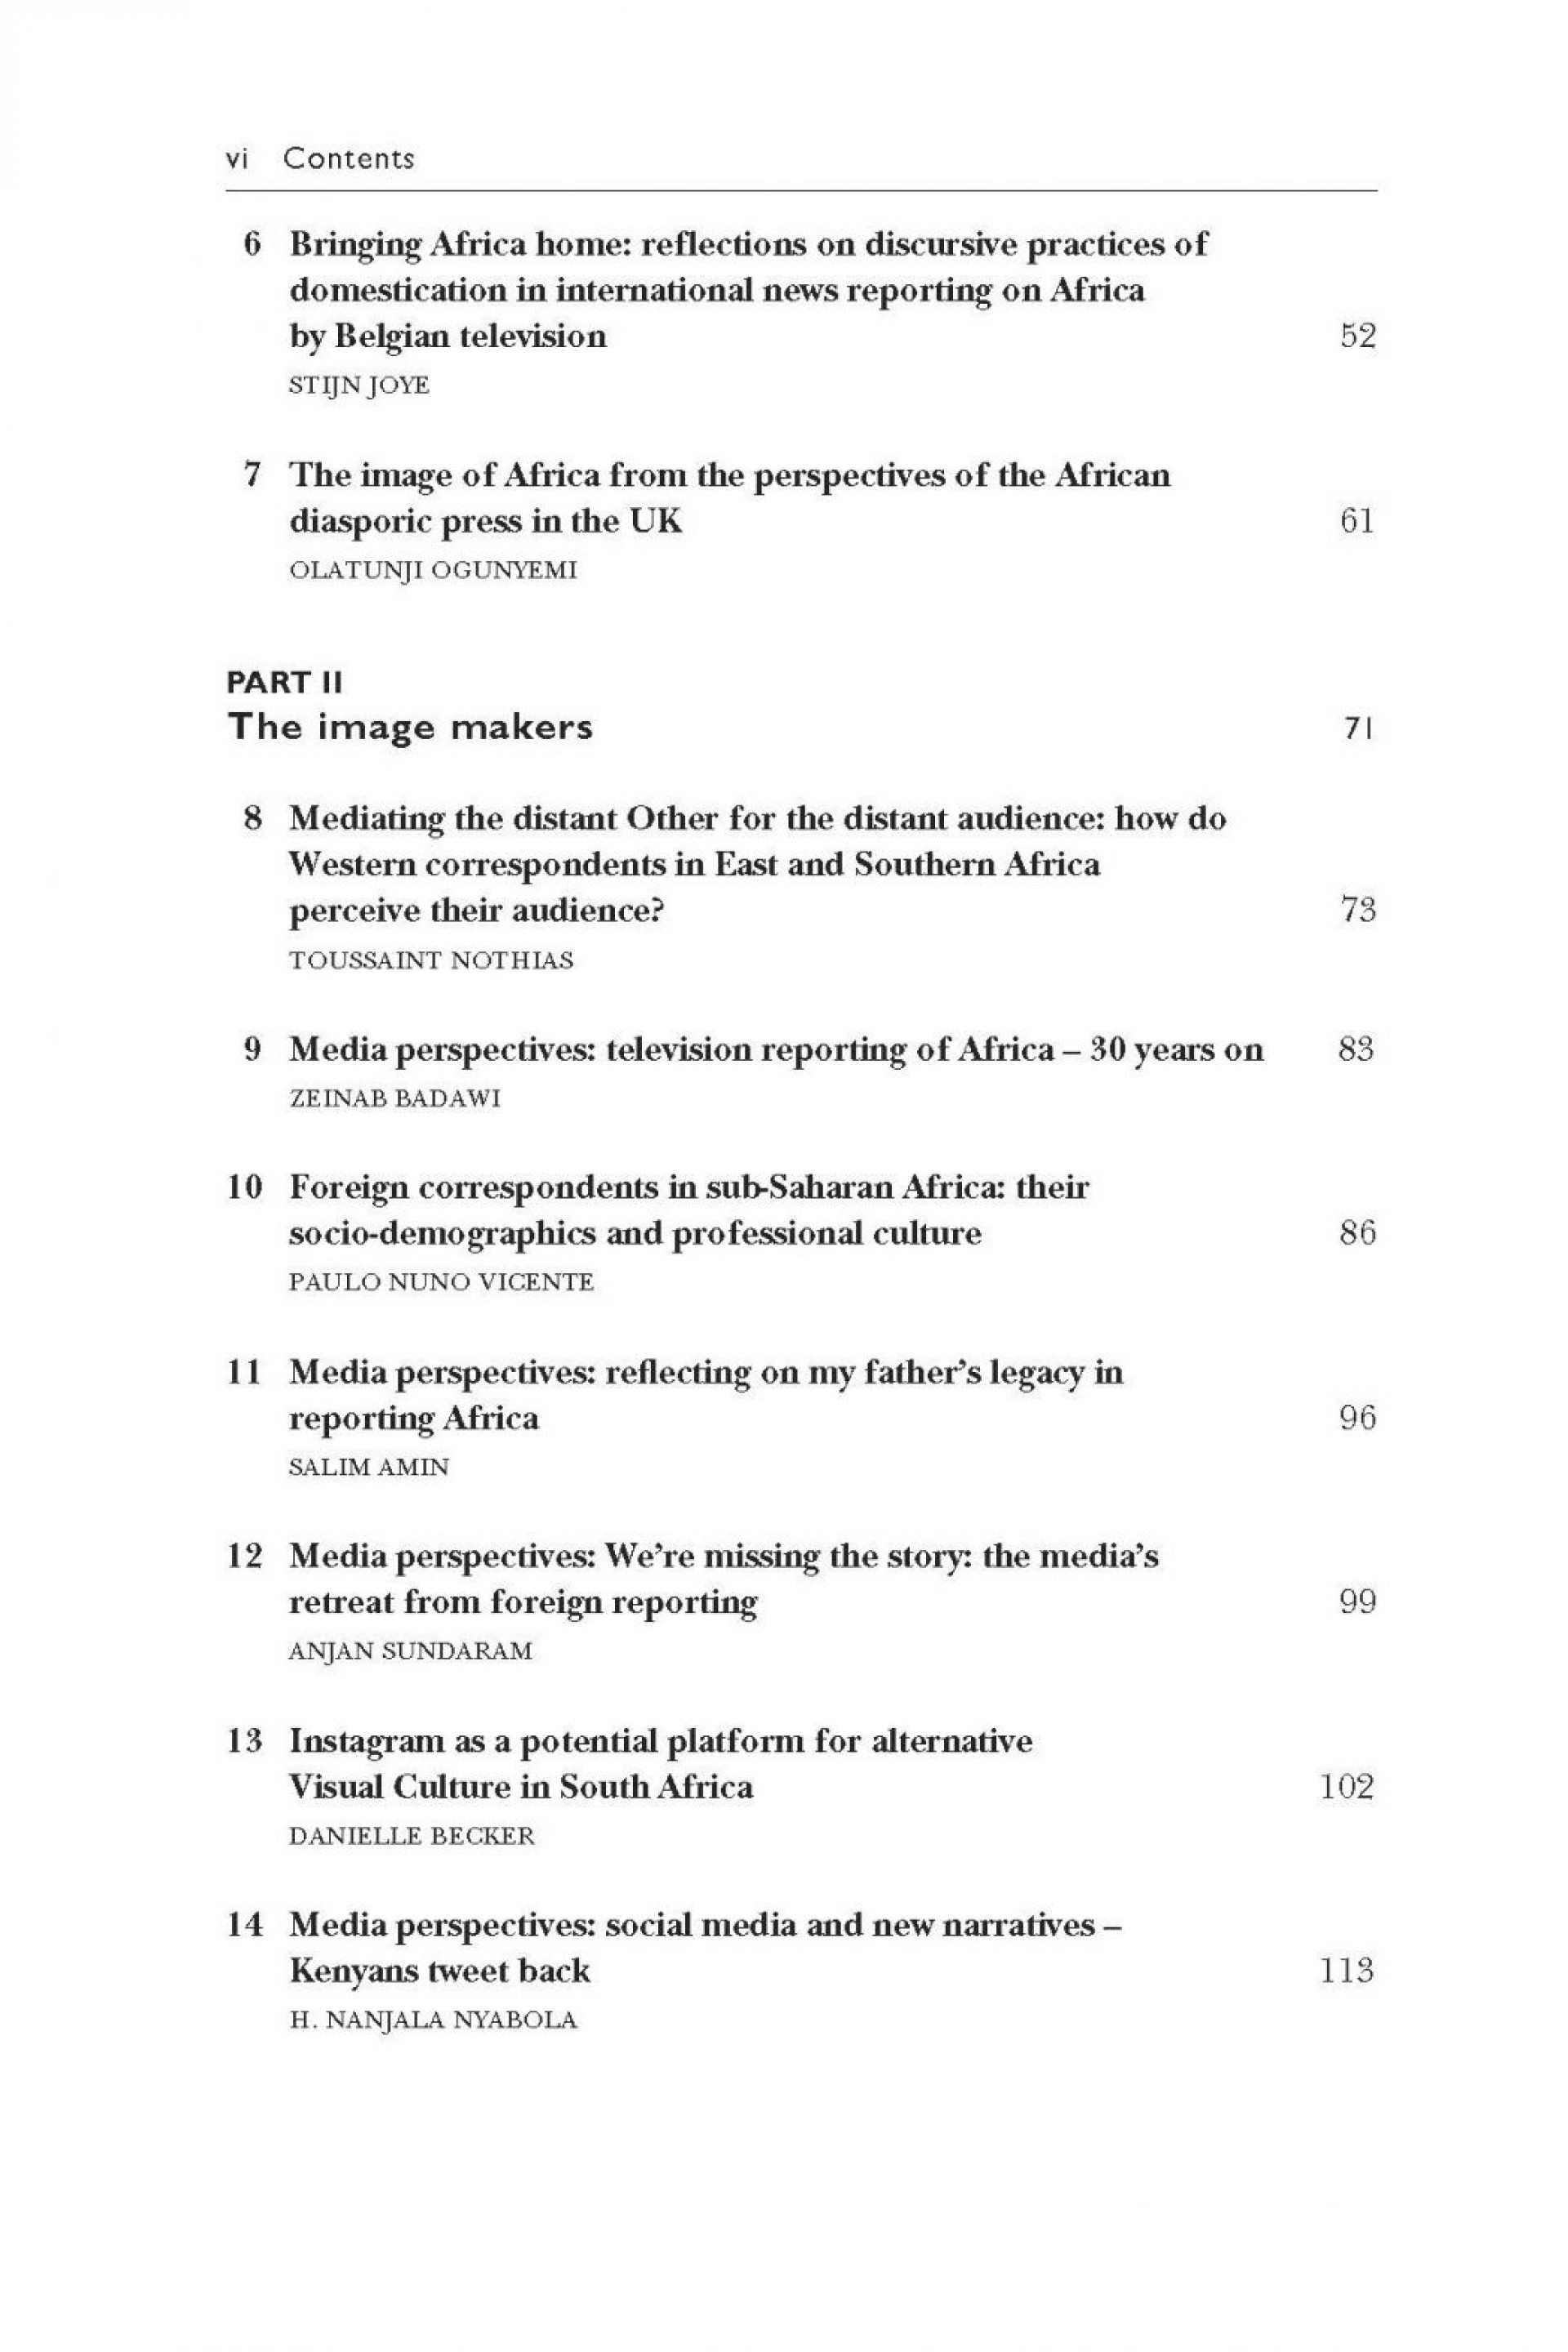 002 Art History Essay Topics Comparison Ideas Contrast Example Ami Table Of Contents P Ap Examples Minute Analysis Long Formal Compare And Template 1048x1572 Formidable About Related To Artificial Intelligence Philosophy Argumentative Performing Arts 1920